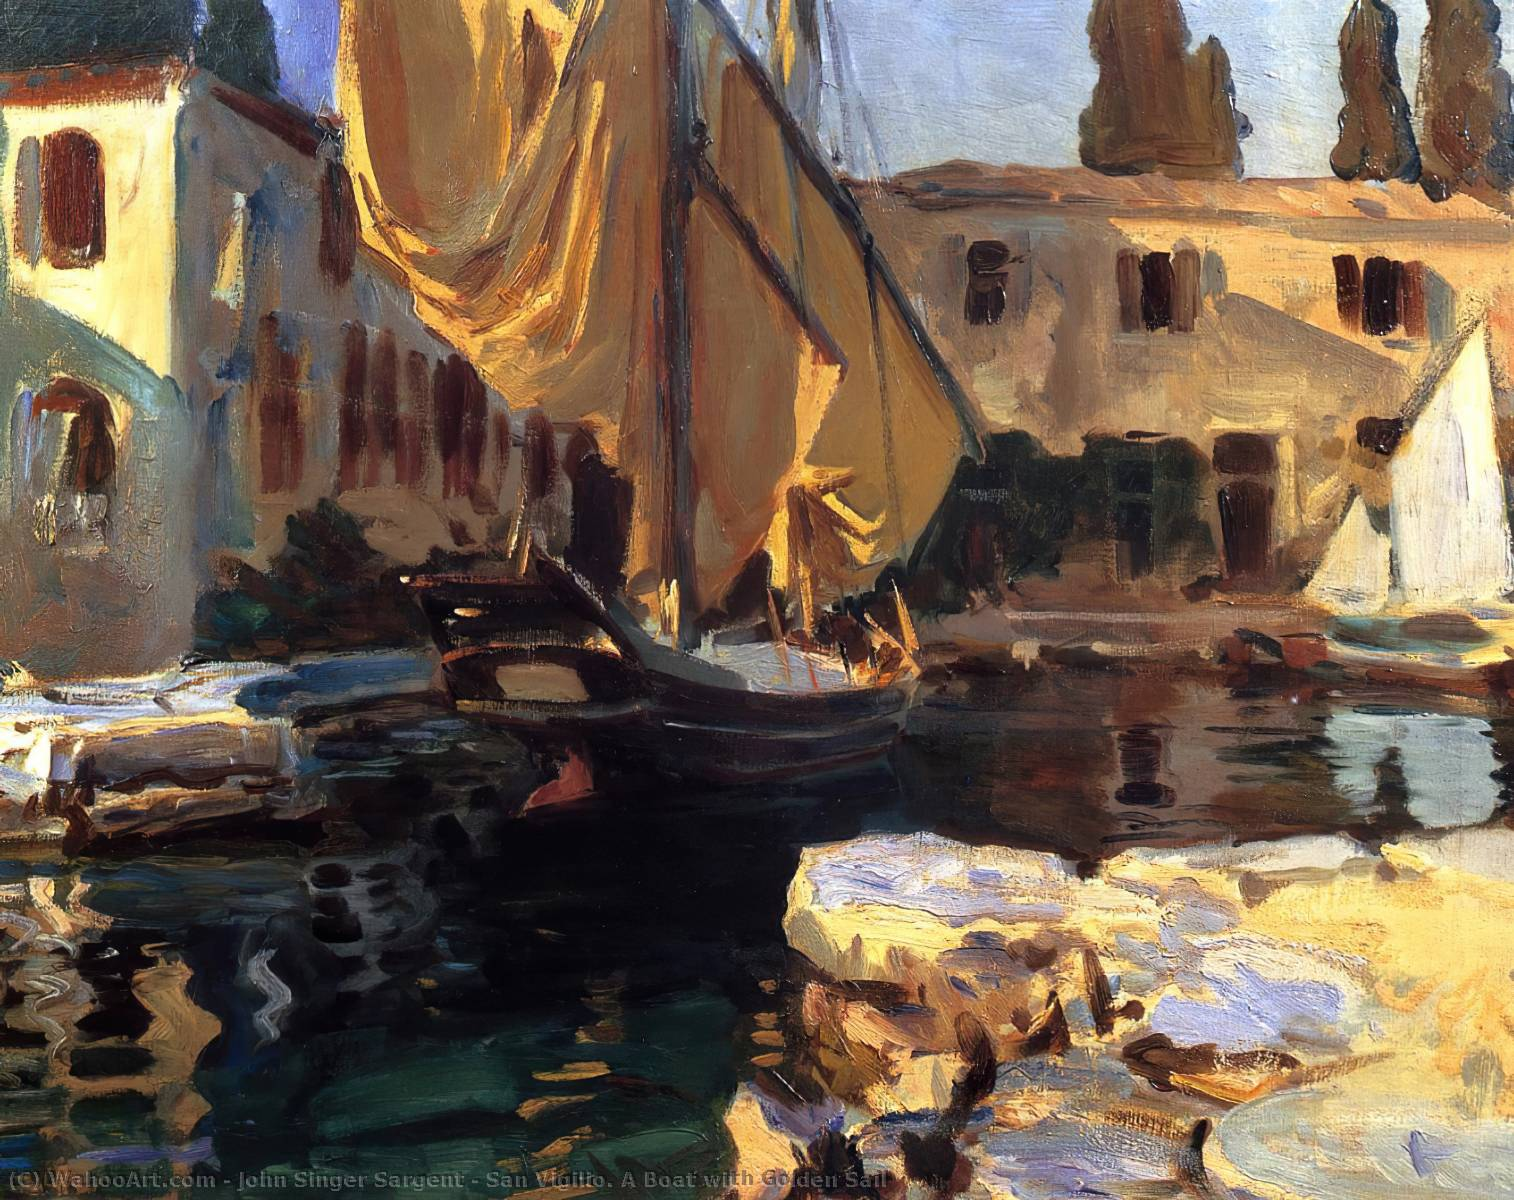 famous painting San Vigilio. A Boat with Golden Sail of John Singer Sargent